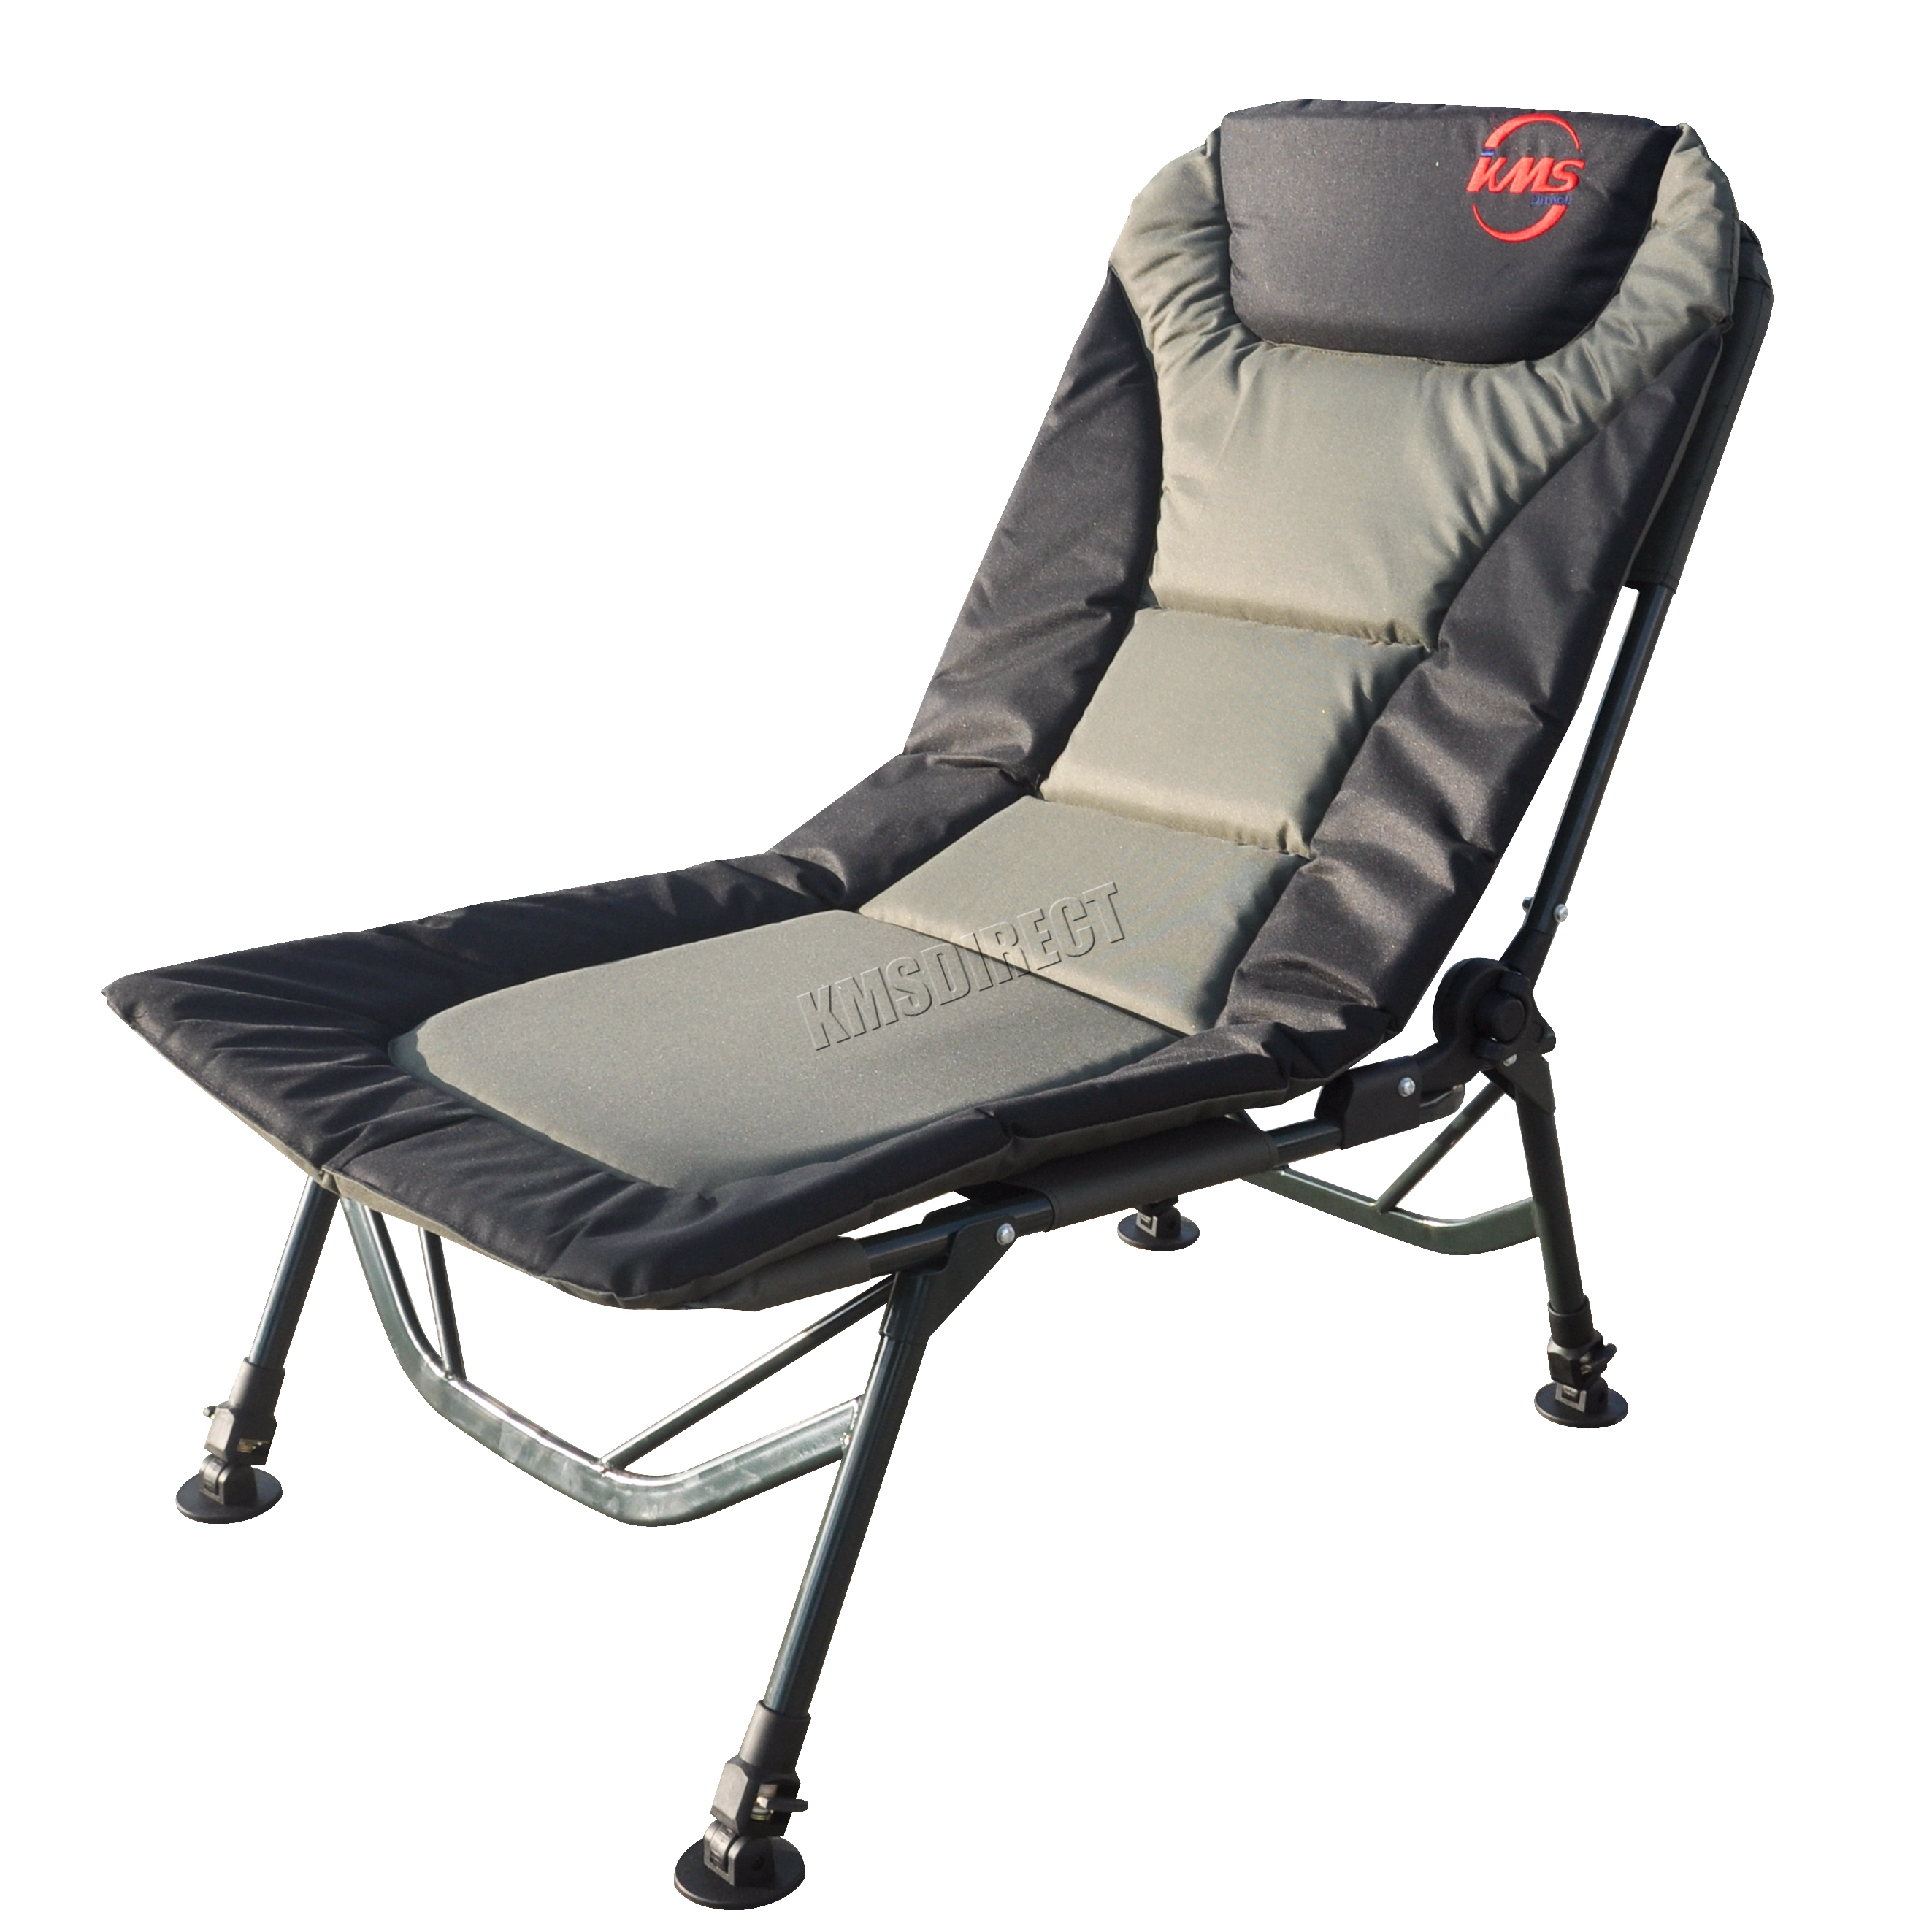 Portable Recliner Chair Dark Green Portable Folding Fishing Chair Camping Recliner